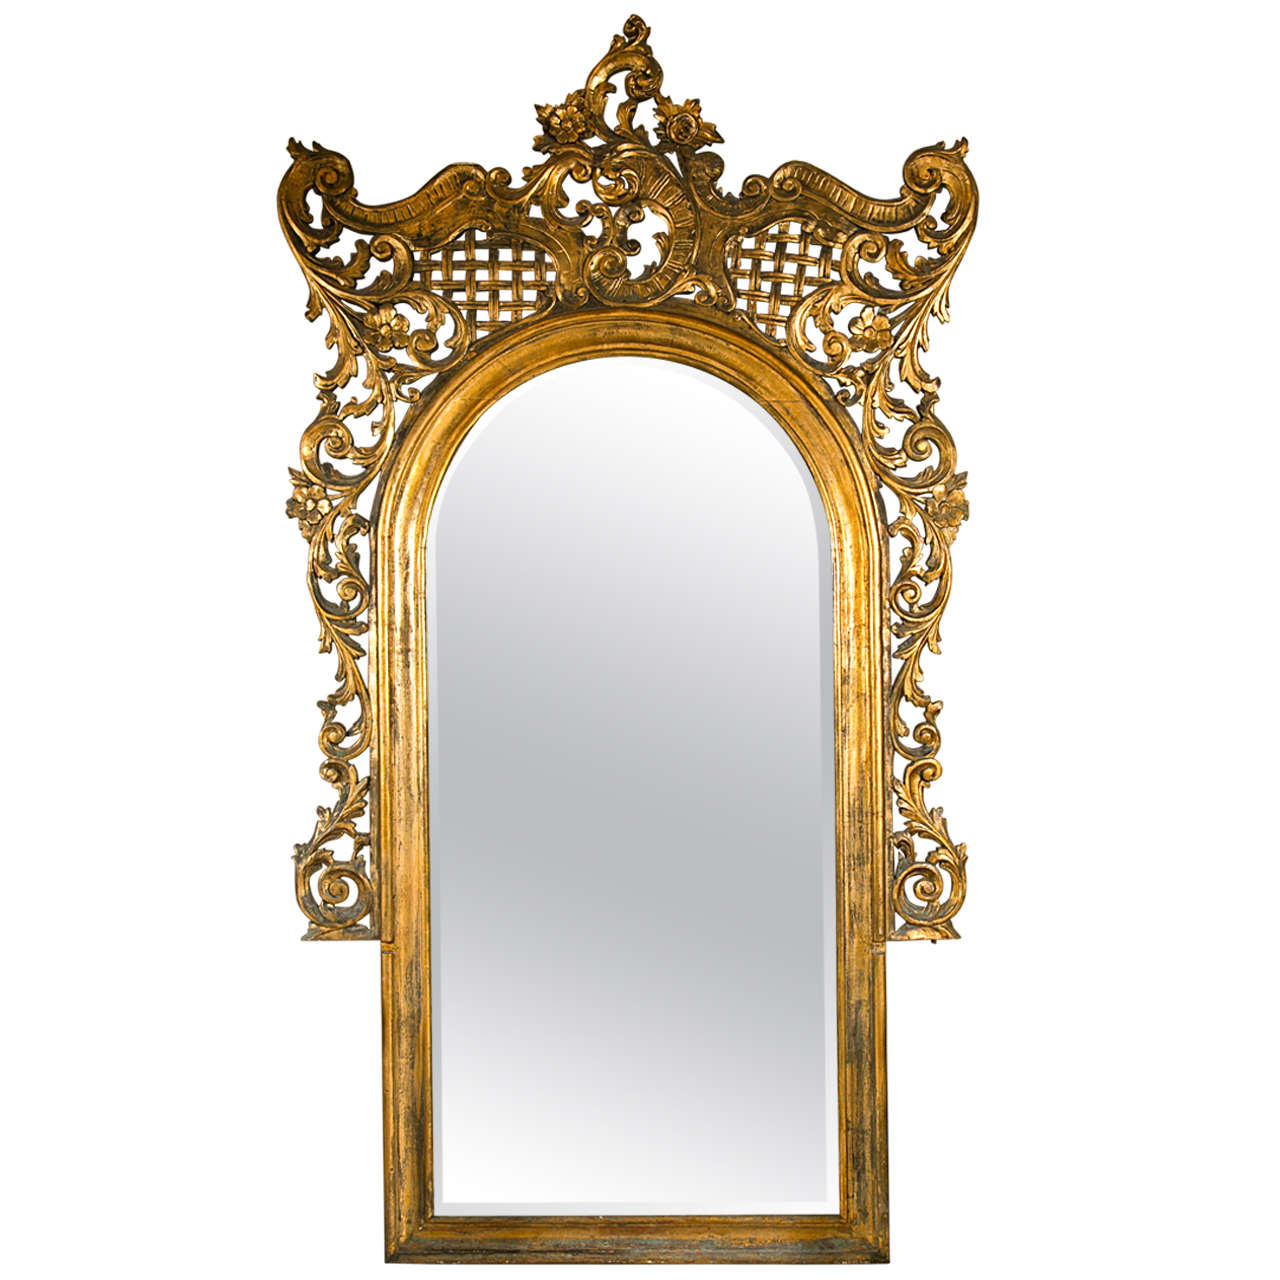 19th century monumental french rococo floor mirror at 1stdibs for Floor mirror italian baroque rococo style